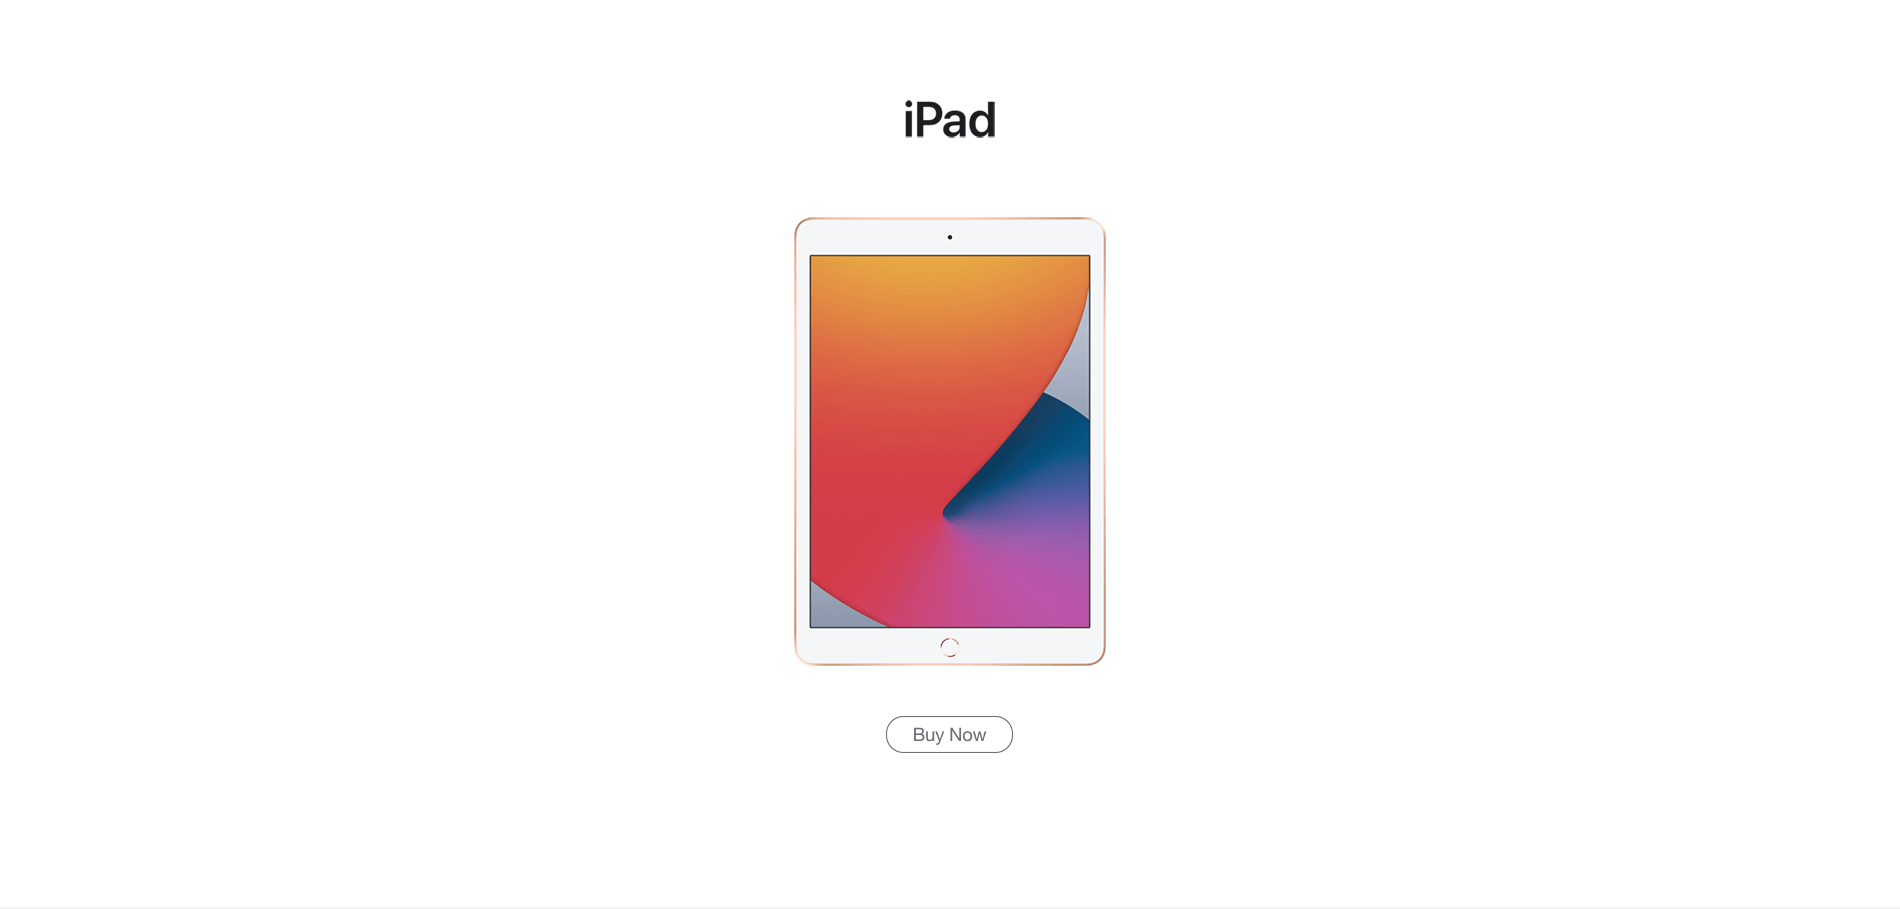 iPad. Buy now